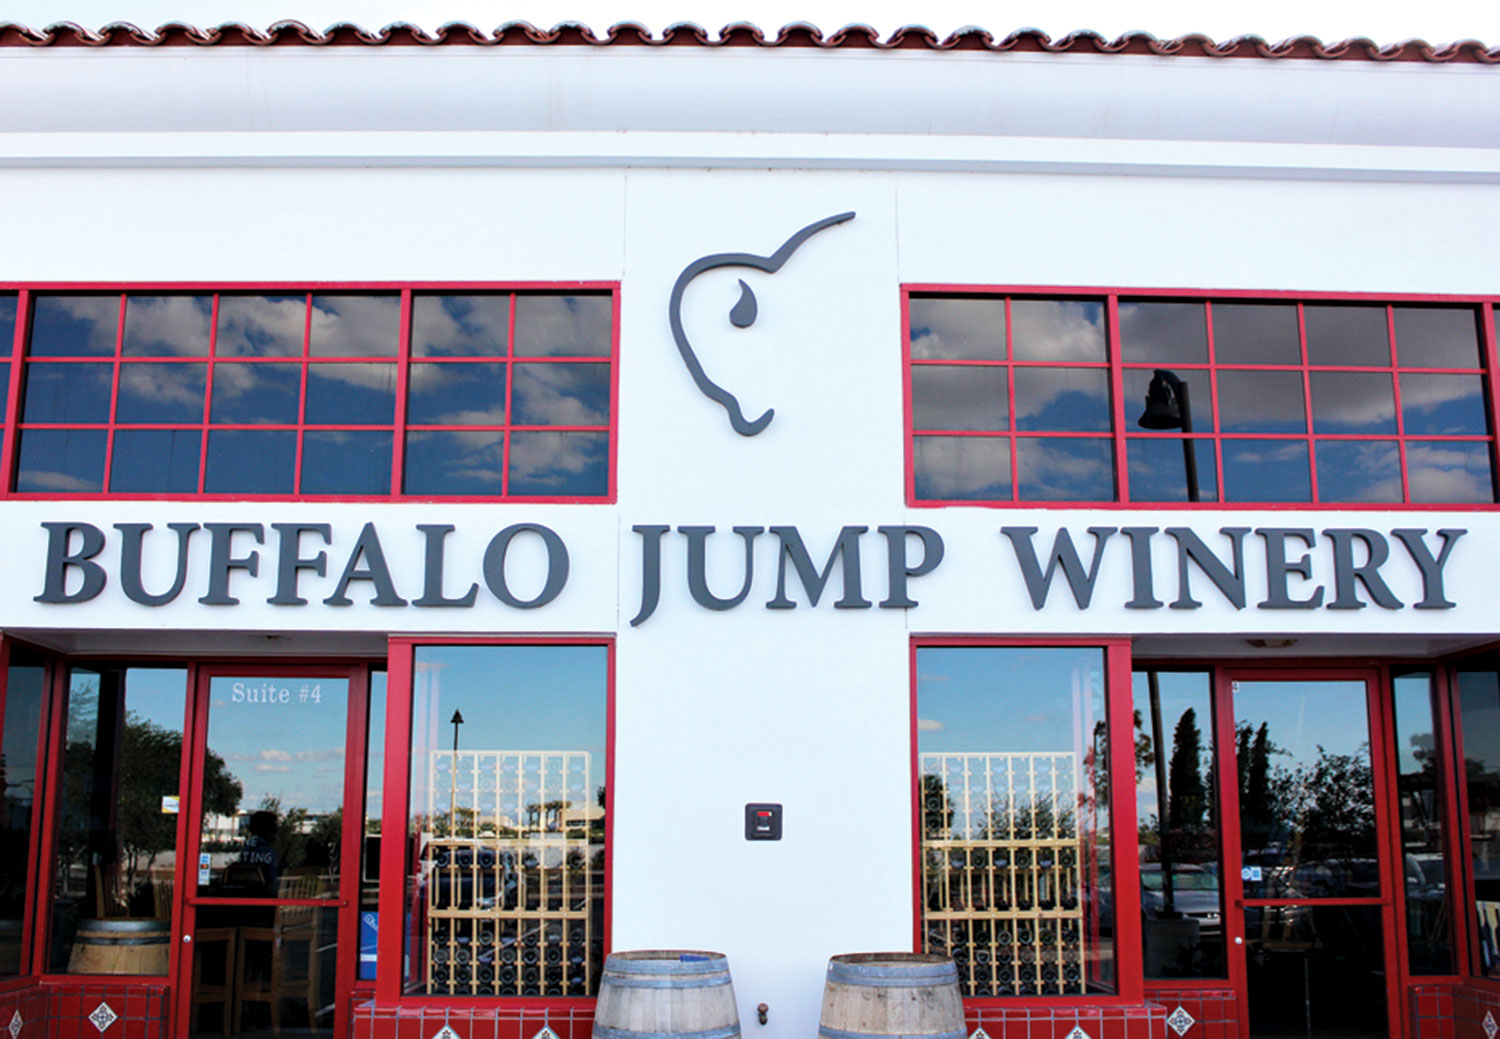 Buffalo Jump Winery; photos by Harper Speagle-Price